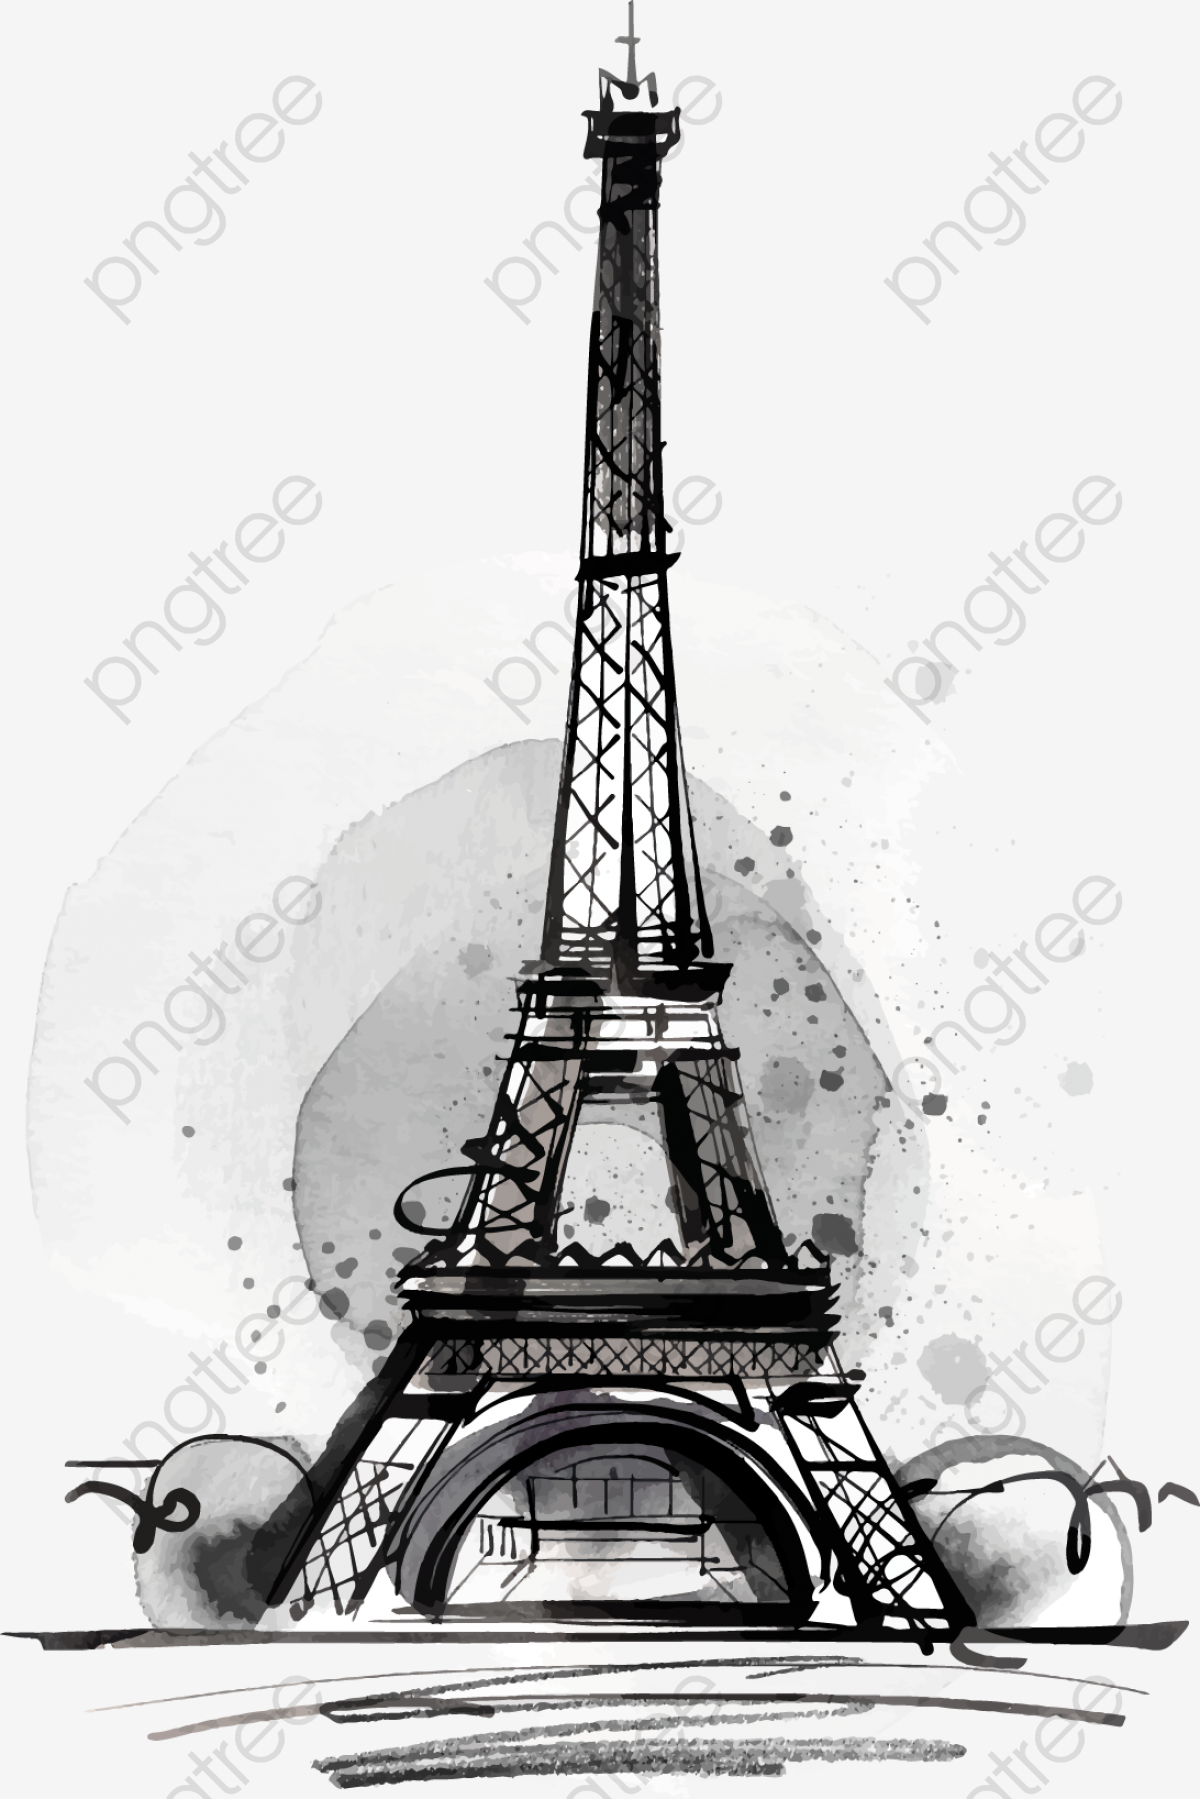 Black Drawing Eiffel Tower Tower Clipart Decoration Vector Png Transparent Clipart Image And Psd File For Free Download Eiffel Tower Drawing Eiffel Tower Eiffel